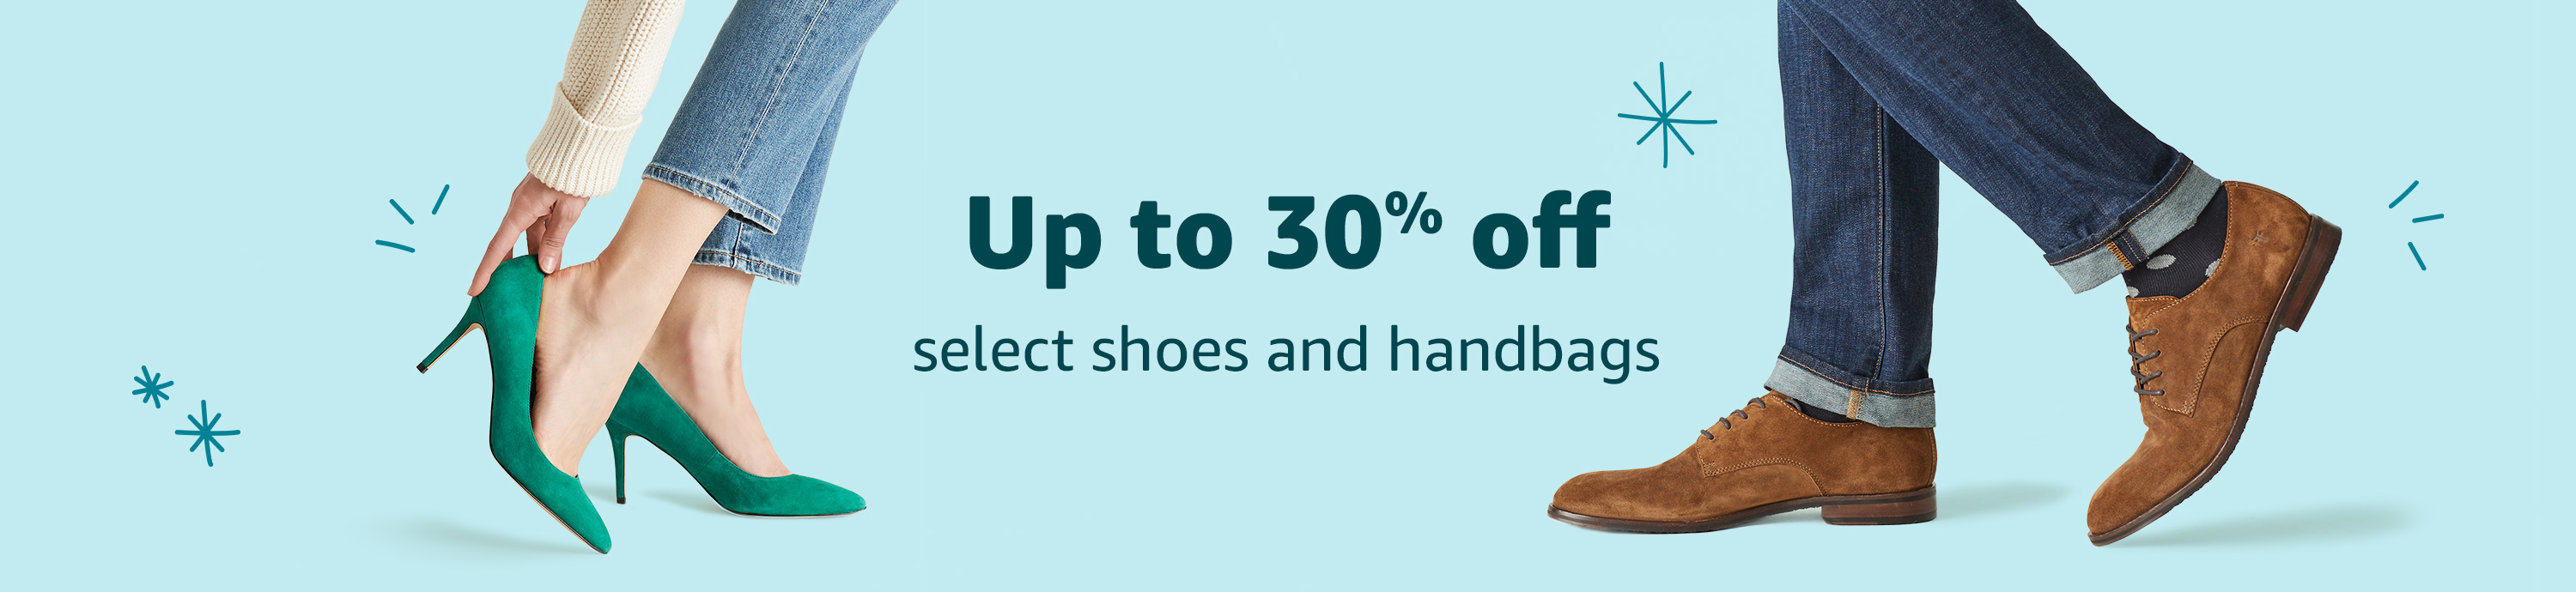 Up to 30% off select shoes & handbags